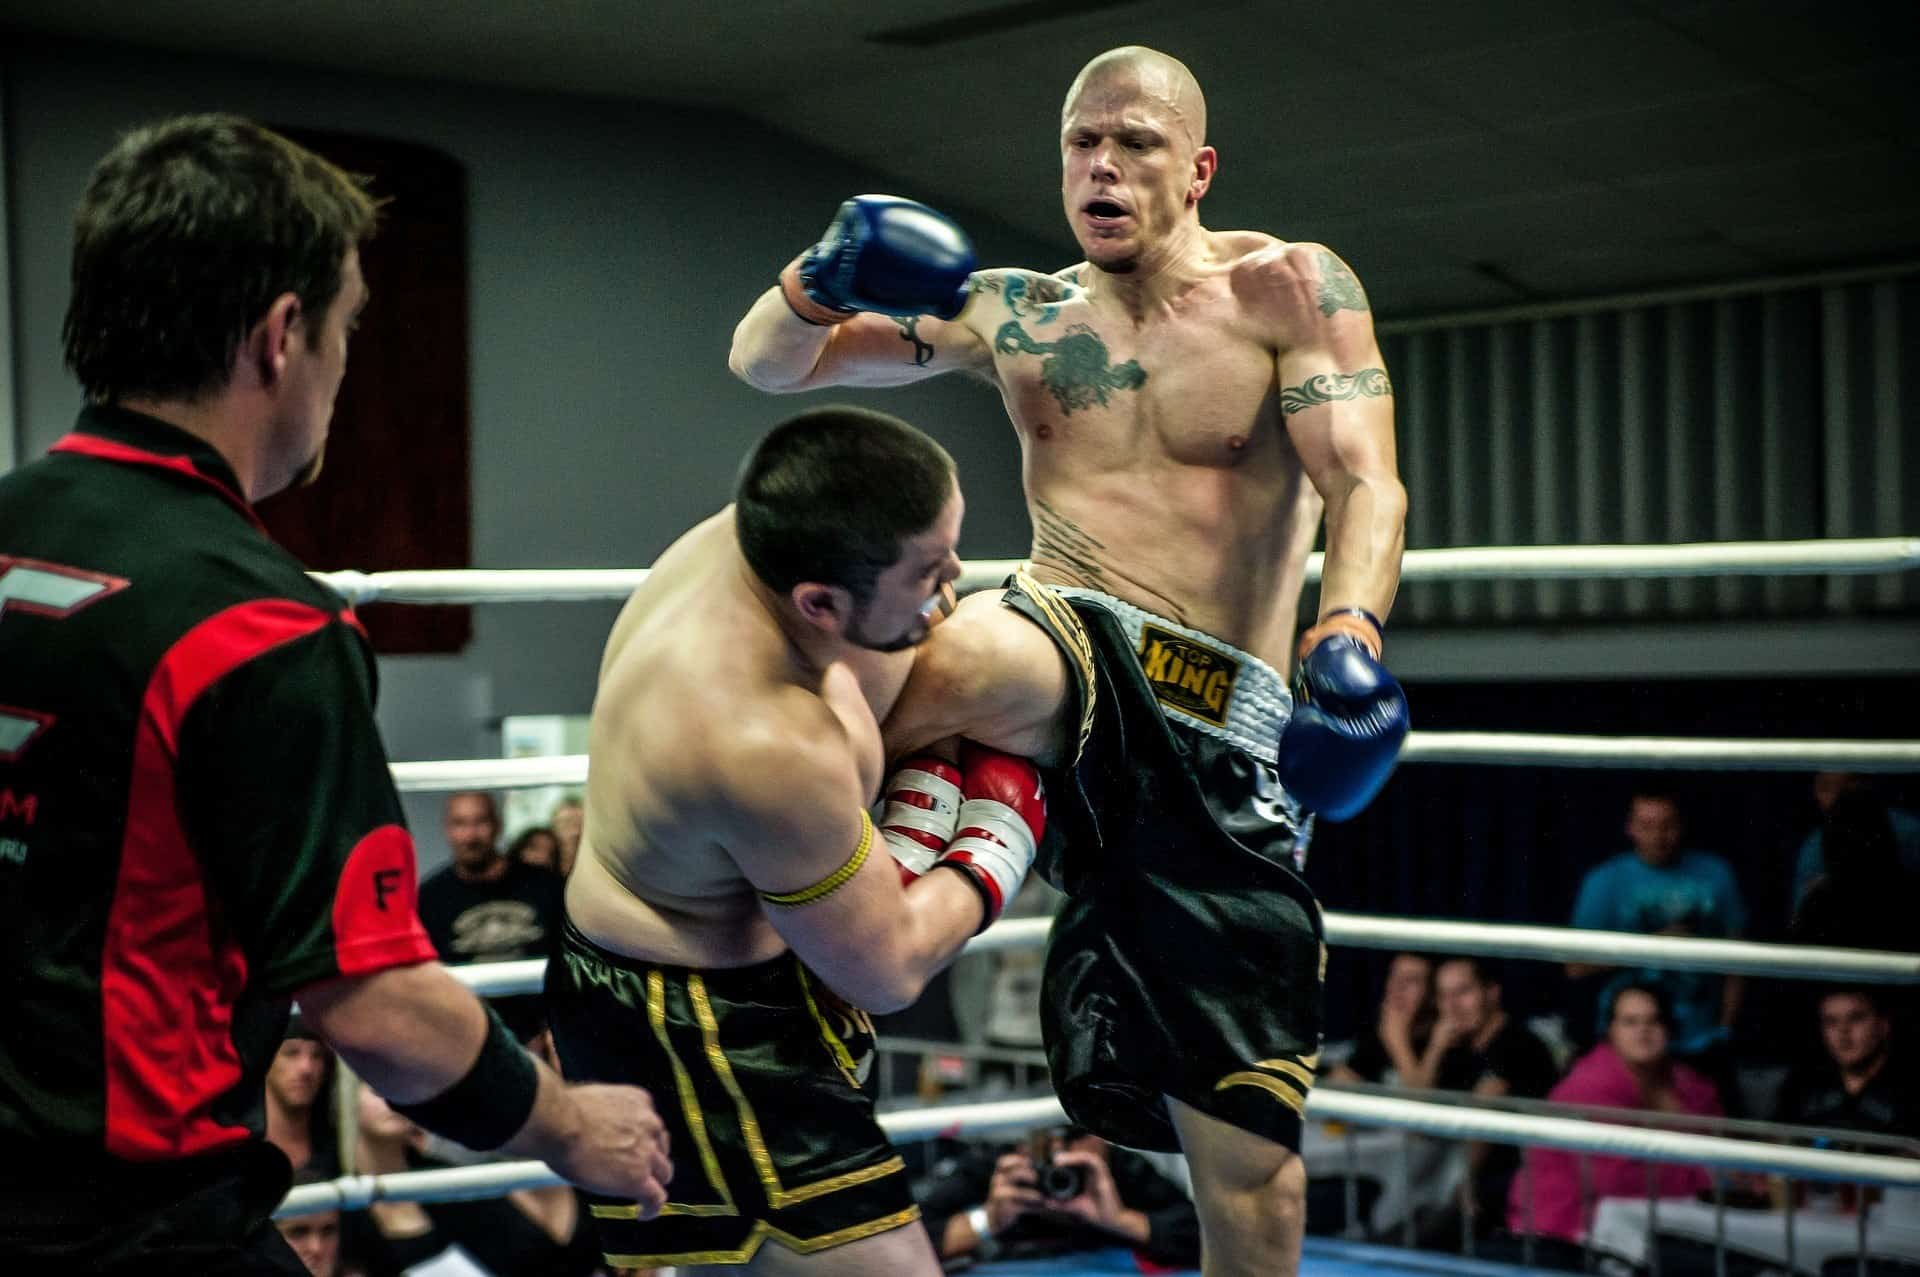 Athletes on a sparring spree